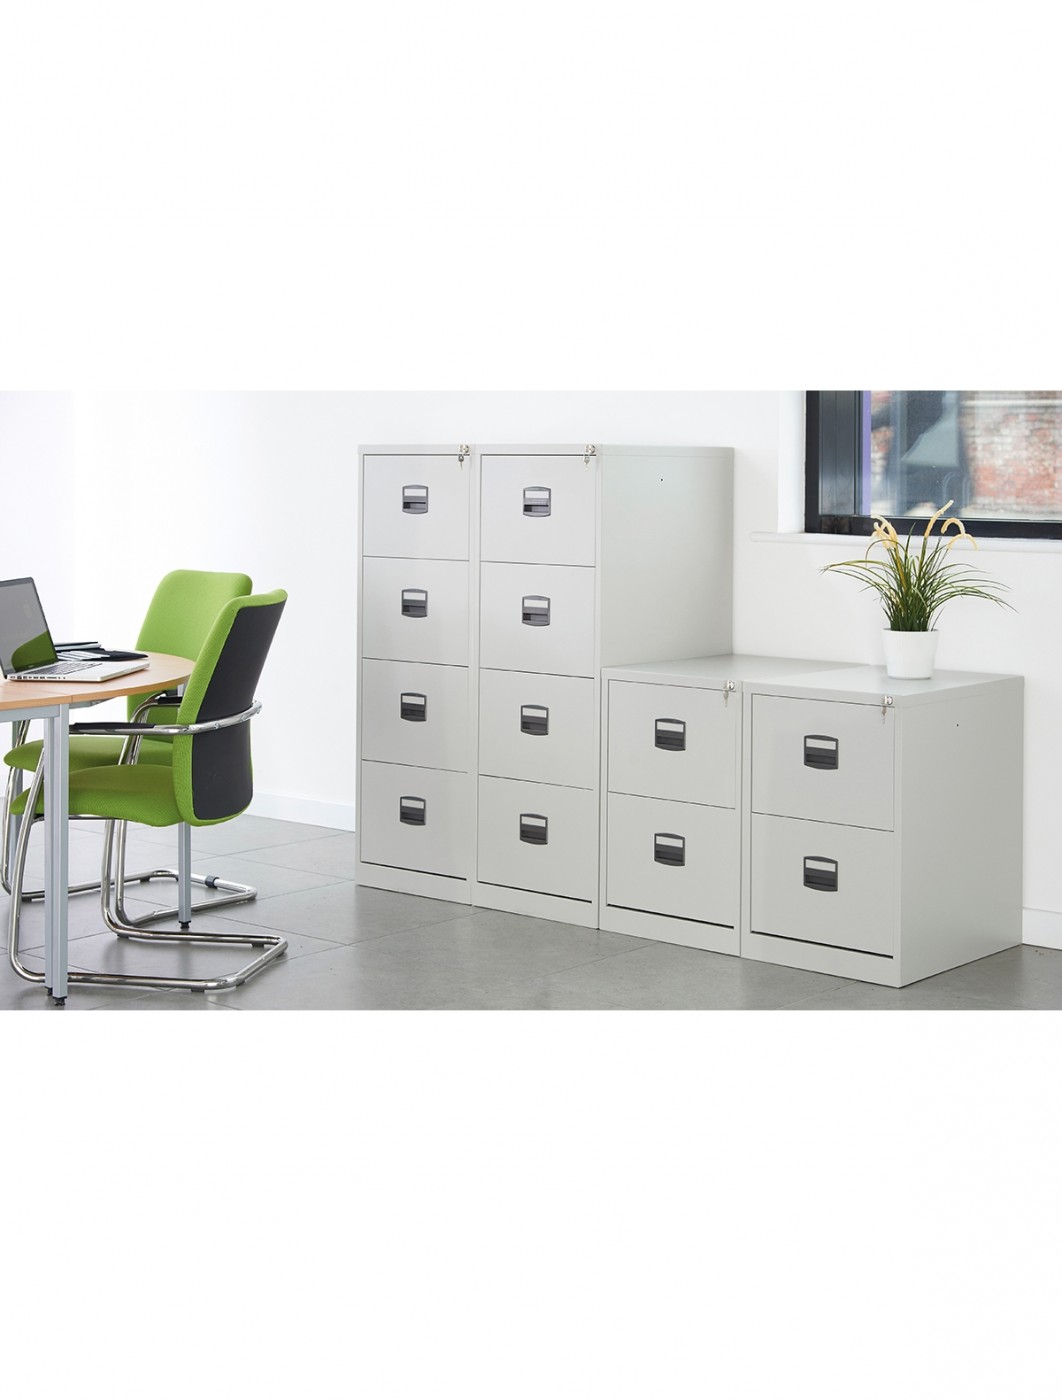 Awesome  Home Office Filing Cabinets 2  Home Office Furniture File Cabinets